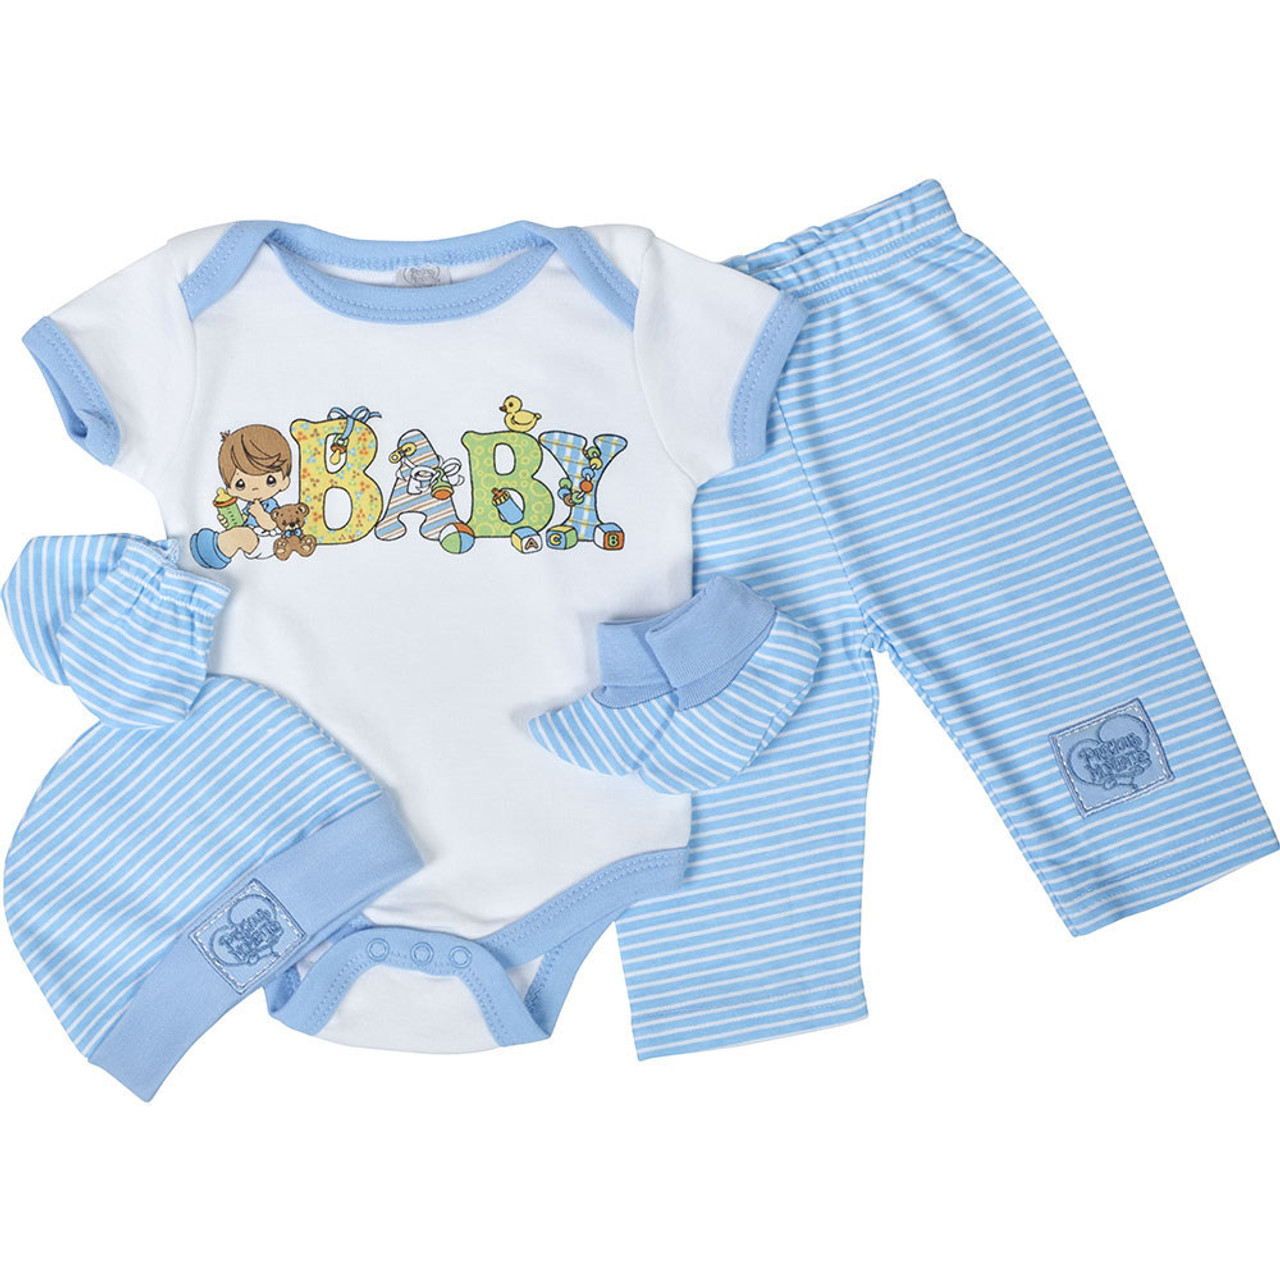 0 3 Months Sweet Dreams Boys 5 Piece Layette Gift Set 1